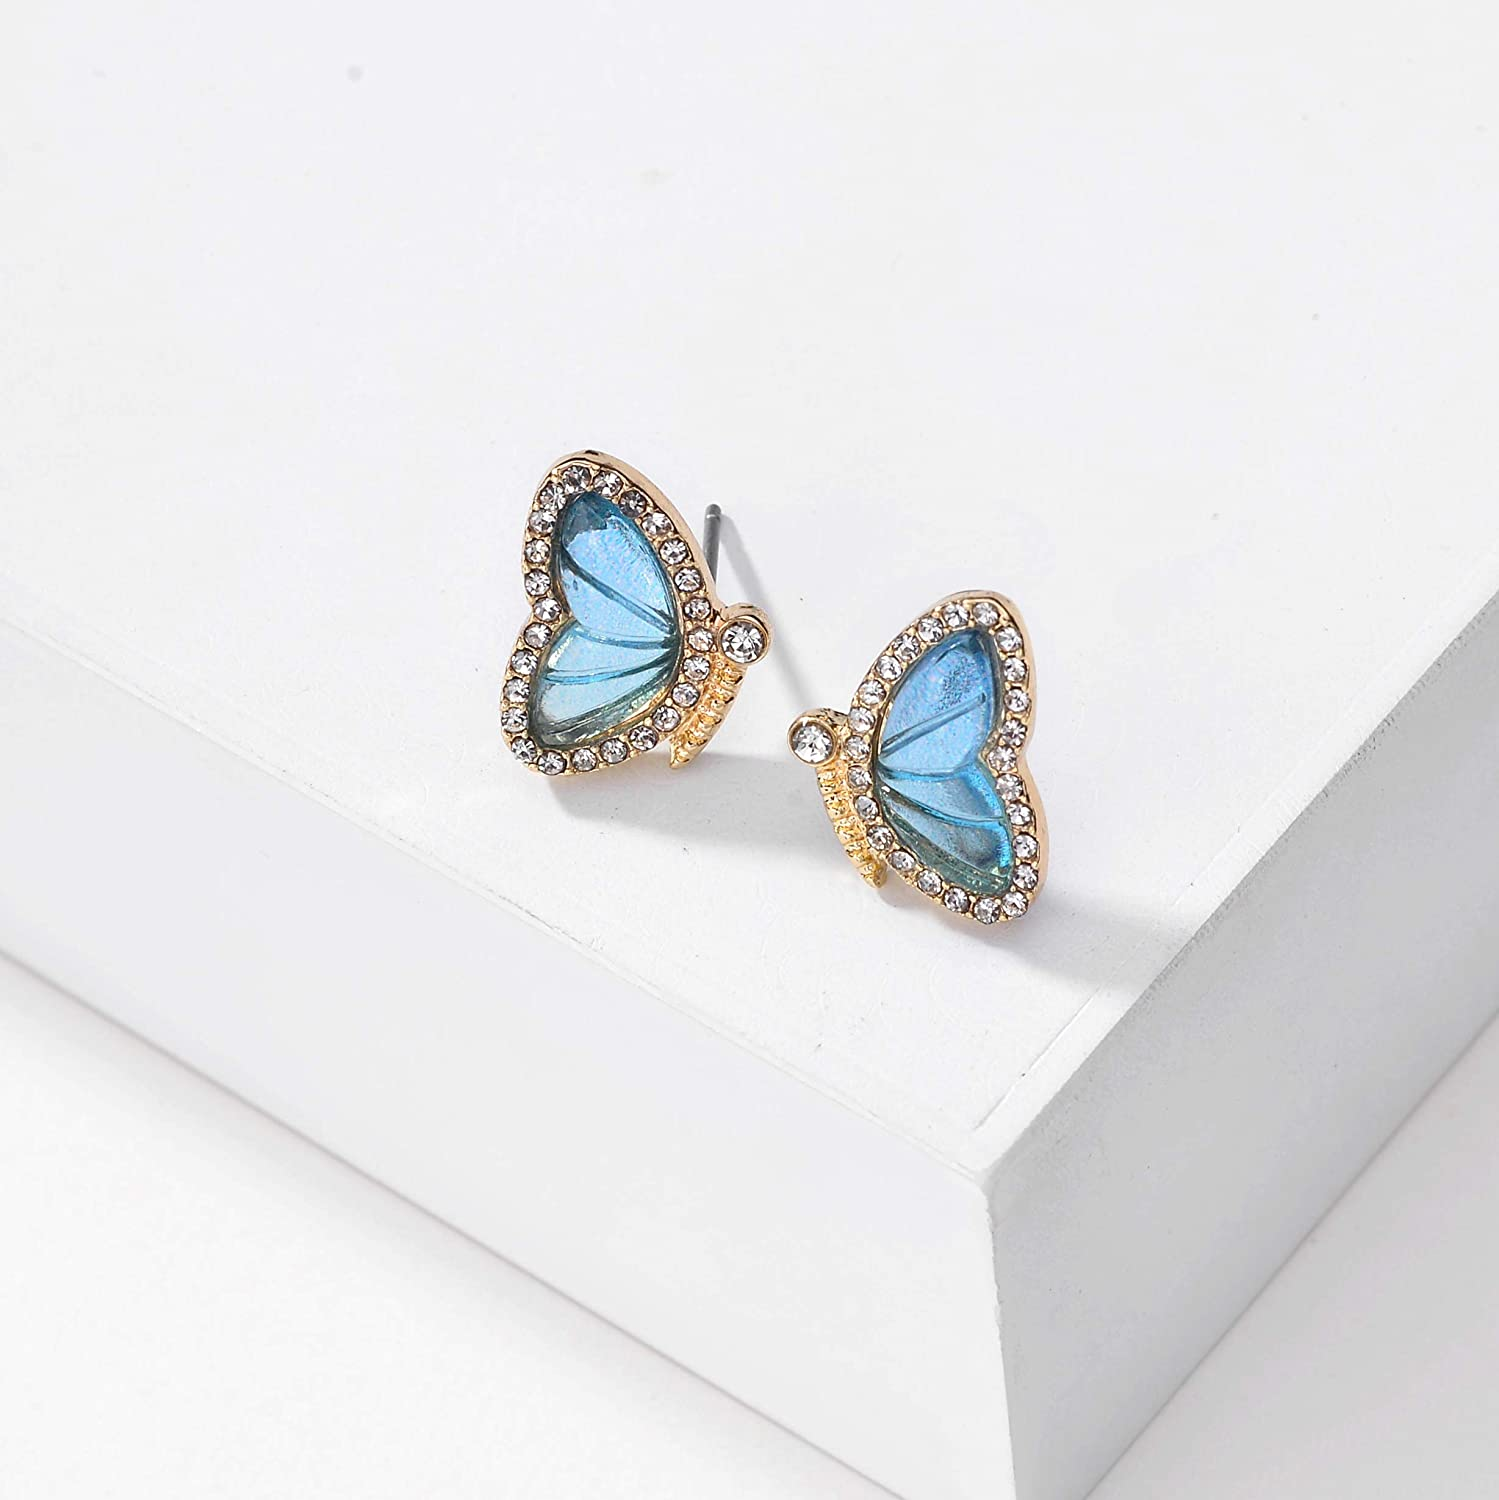 Butterfly Earrings Sweet Insect Fashion Jewelry For Girl Women Charms Gift